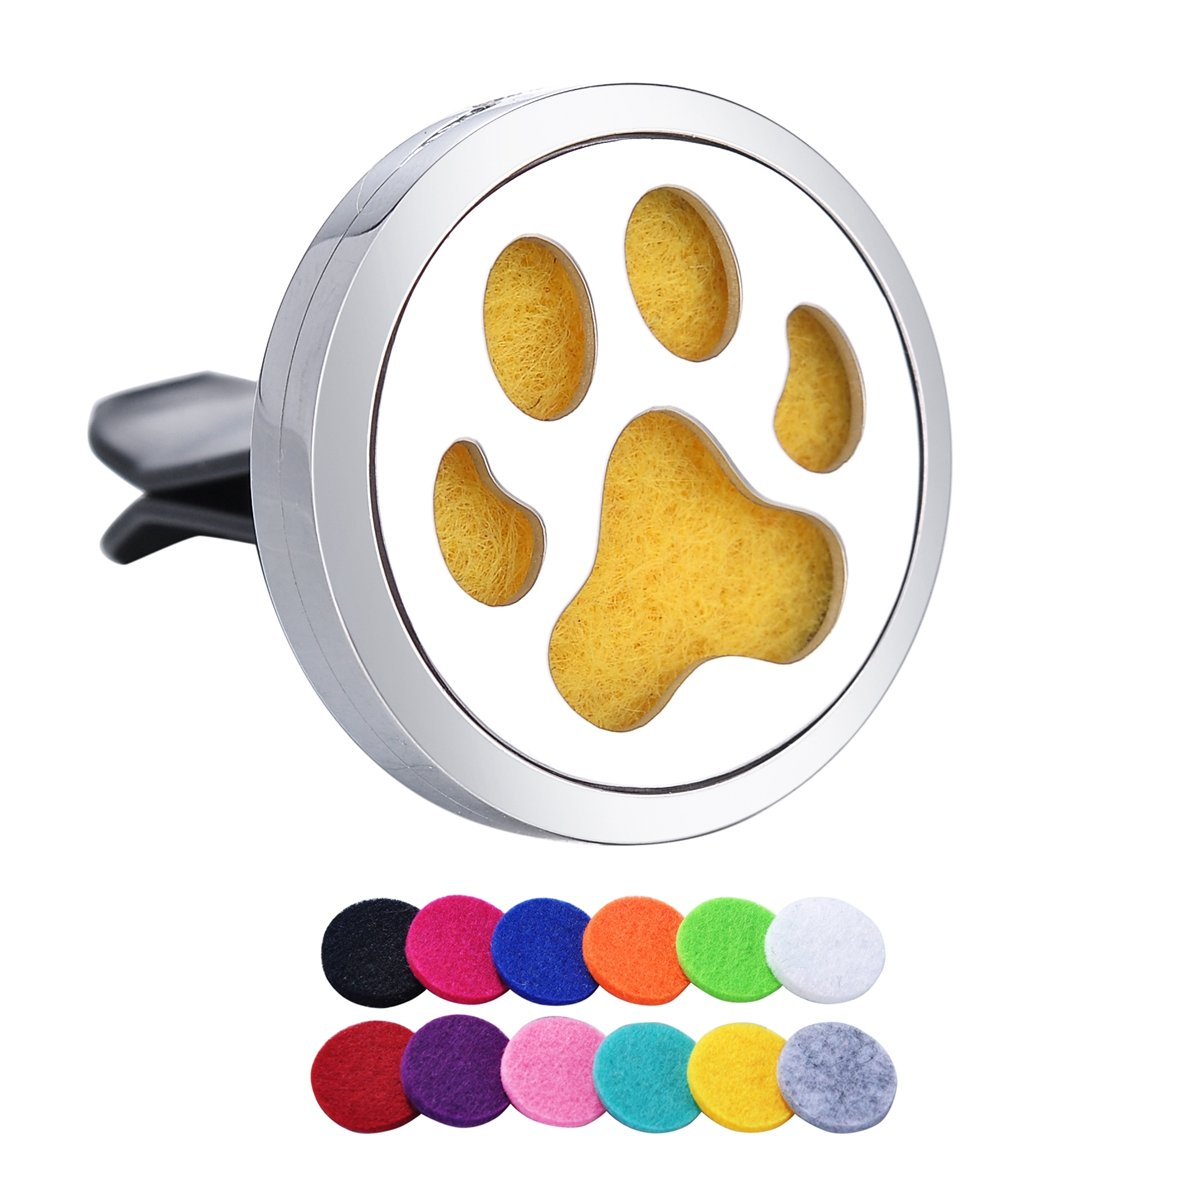 Dog Palm Aromatherapy Car Air Freshener Stainless Steel Essential Oil Diffuser Locket Car Vent Clip 12 Refill Pads Tornado TornadoNA0B00P7T6